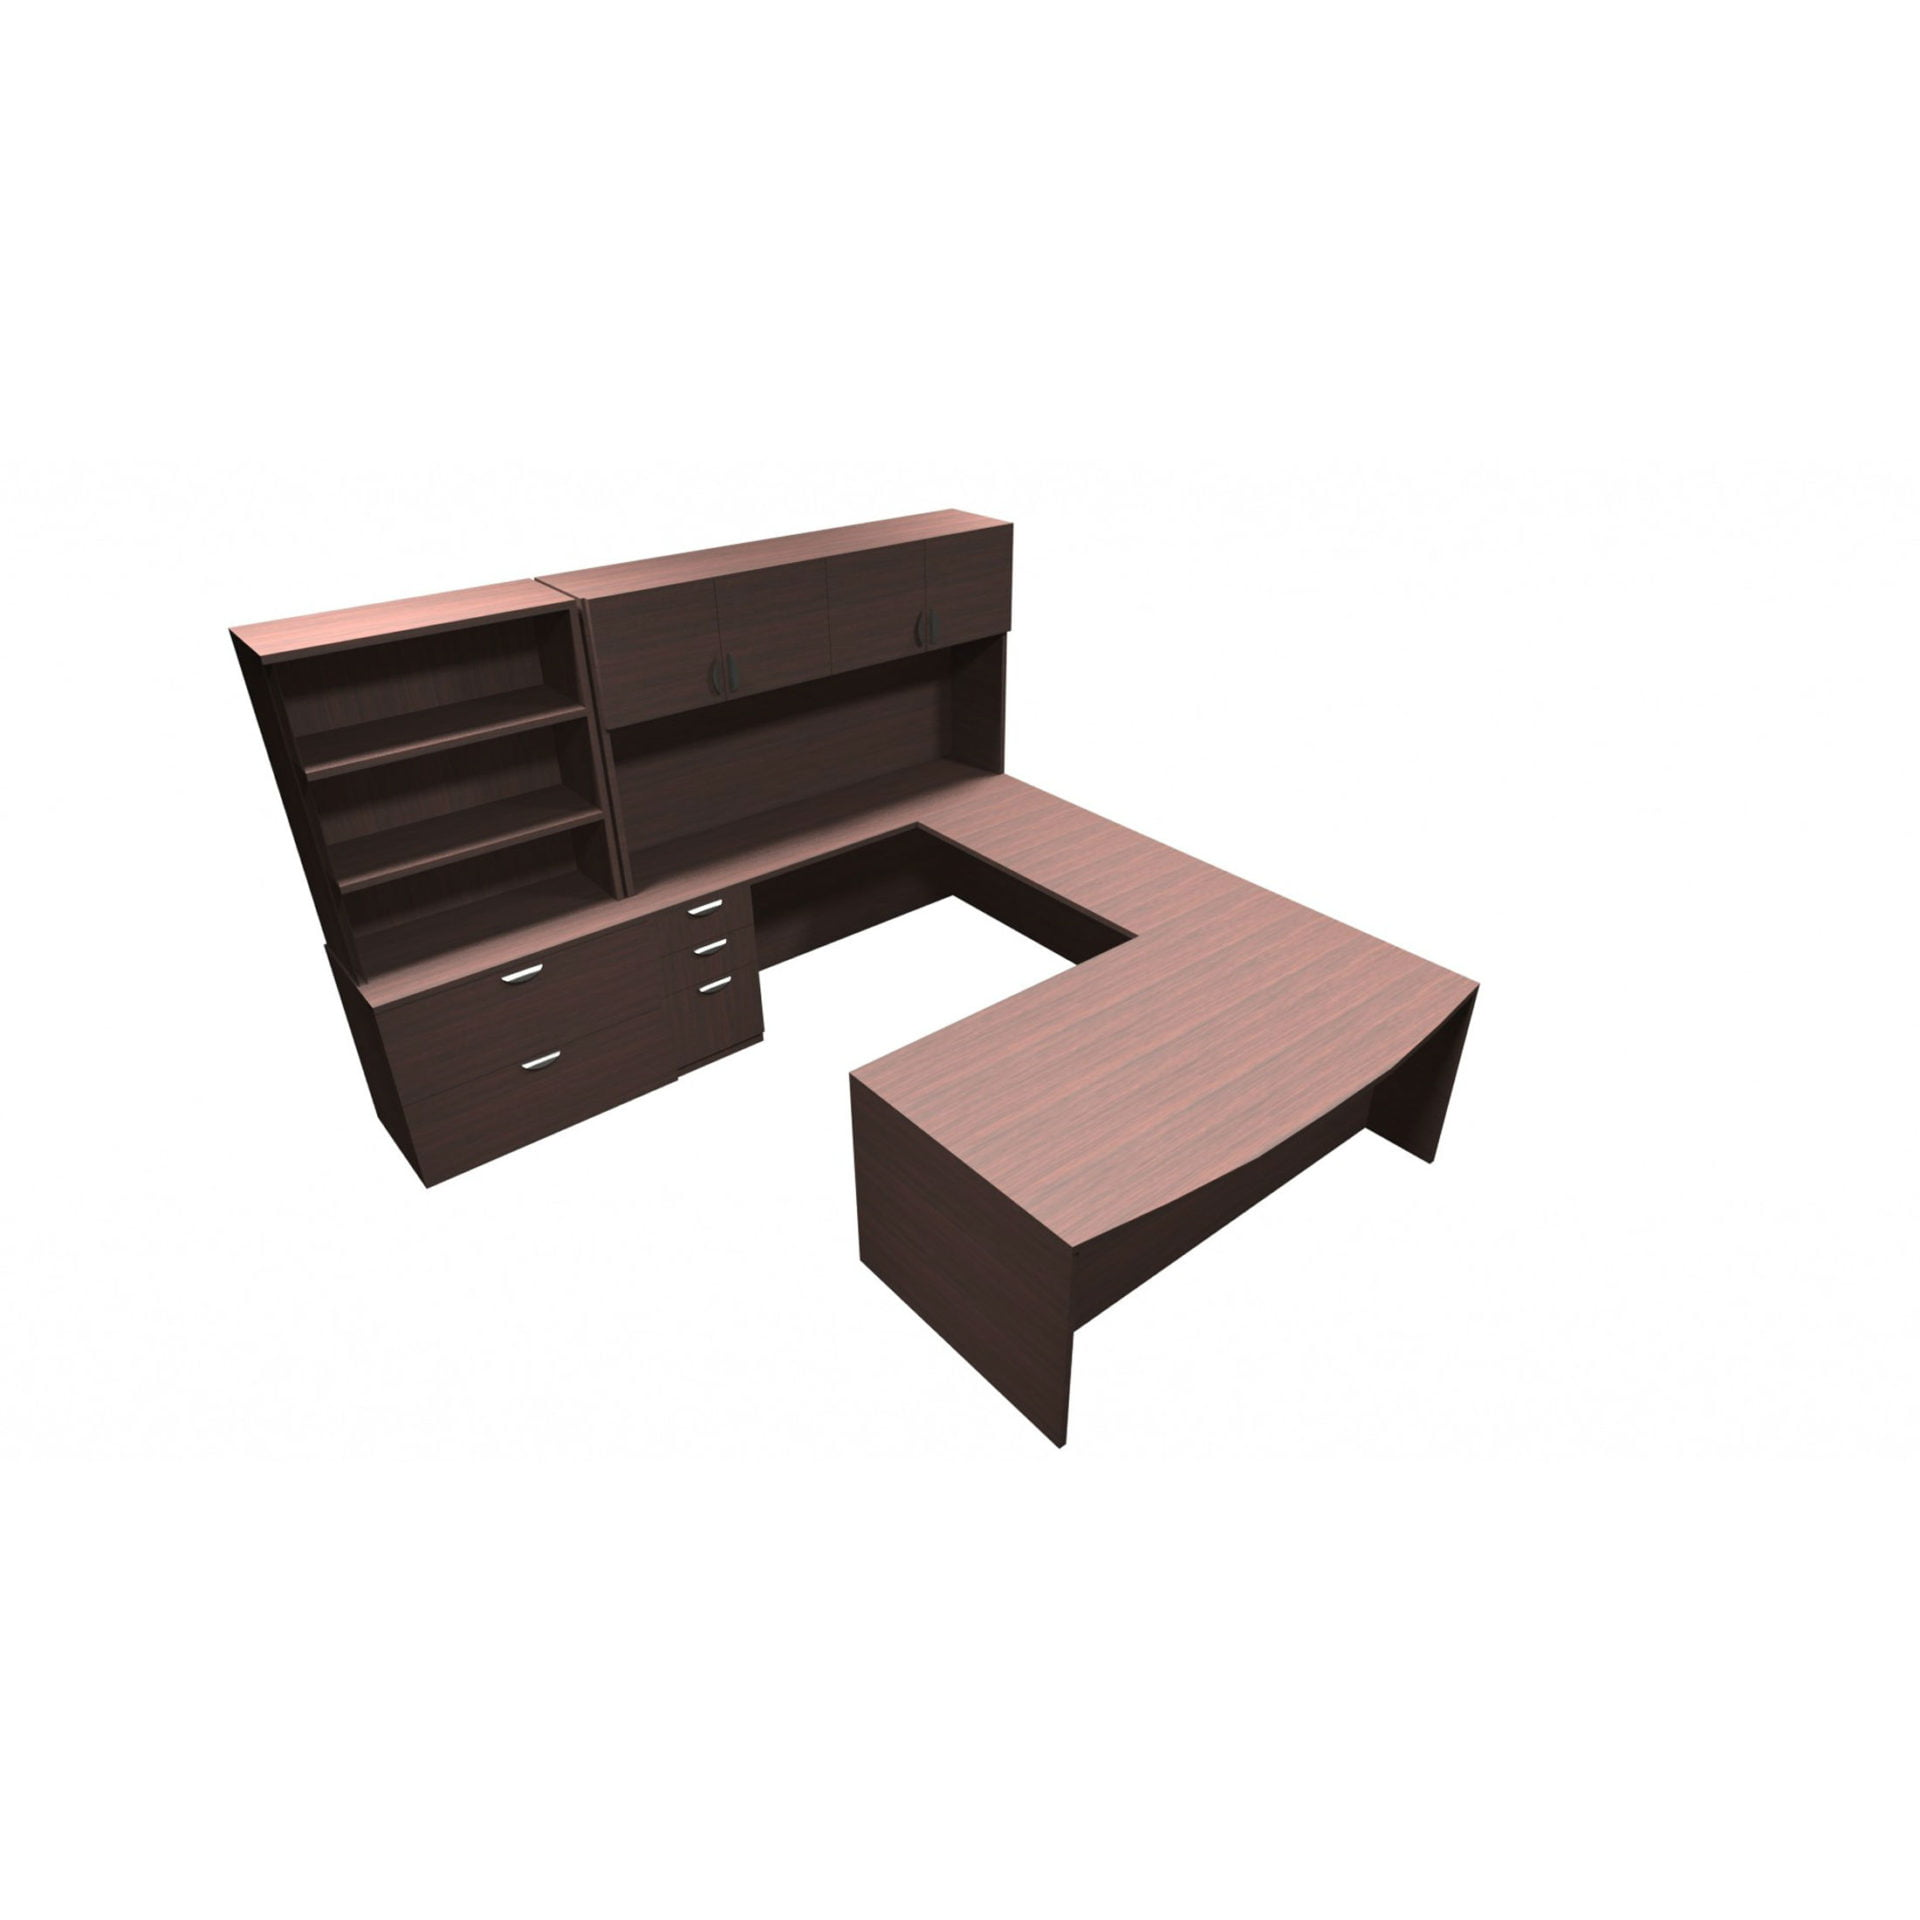 Jade Typical With U-shaped Bowfront Executive Desk, Credenza, File Storage,  Hutch And Shelves